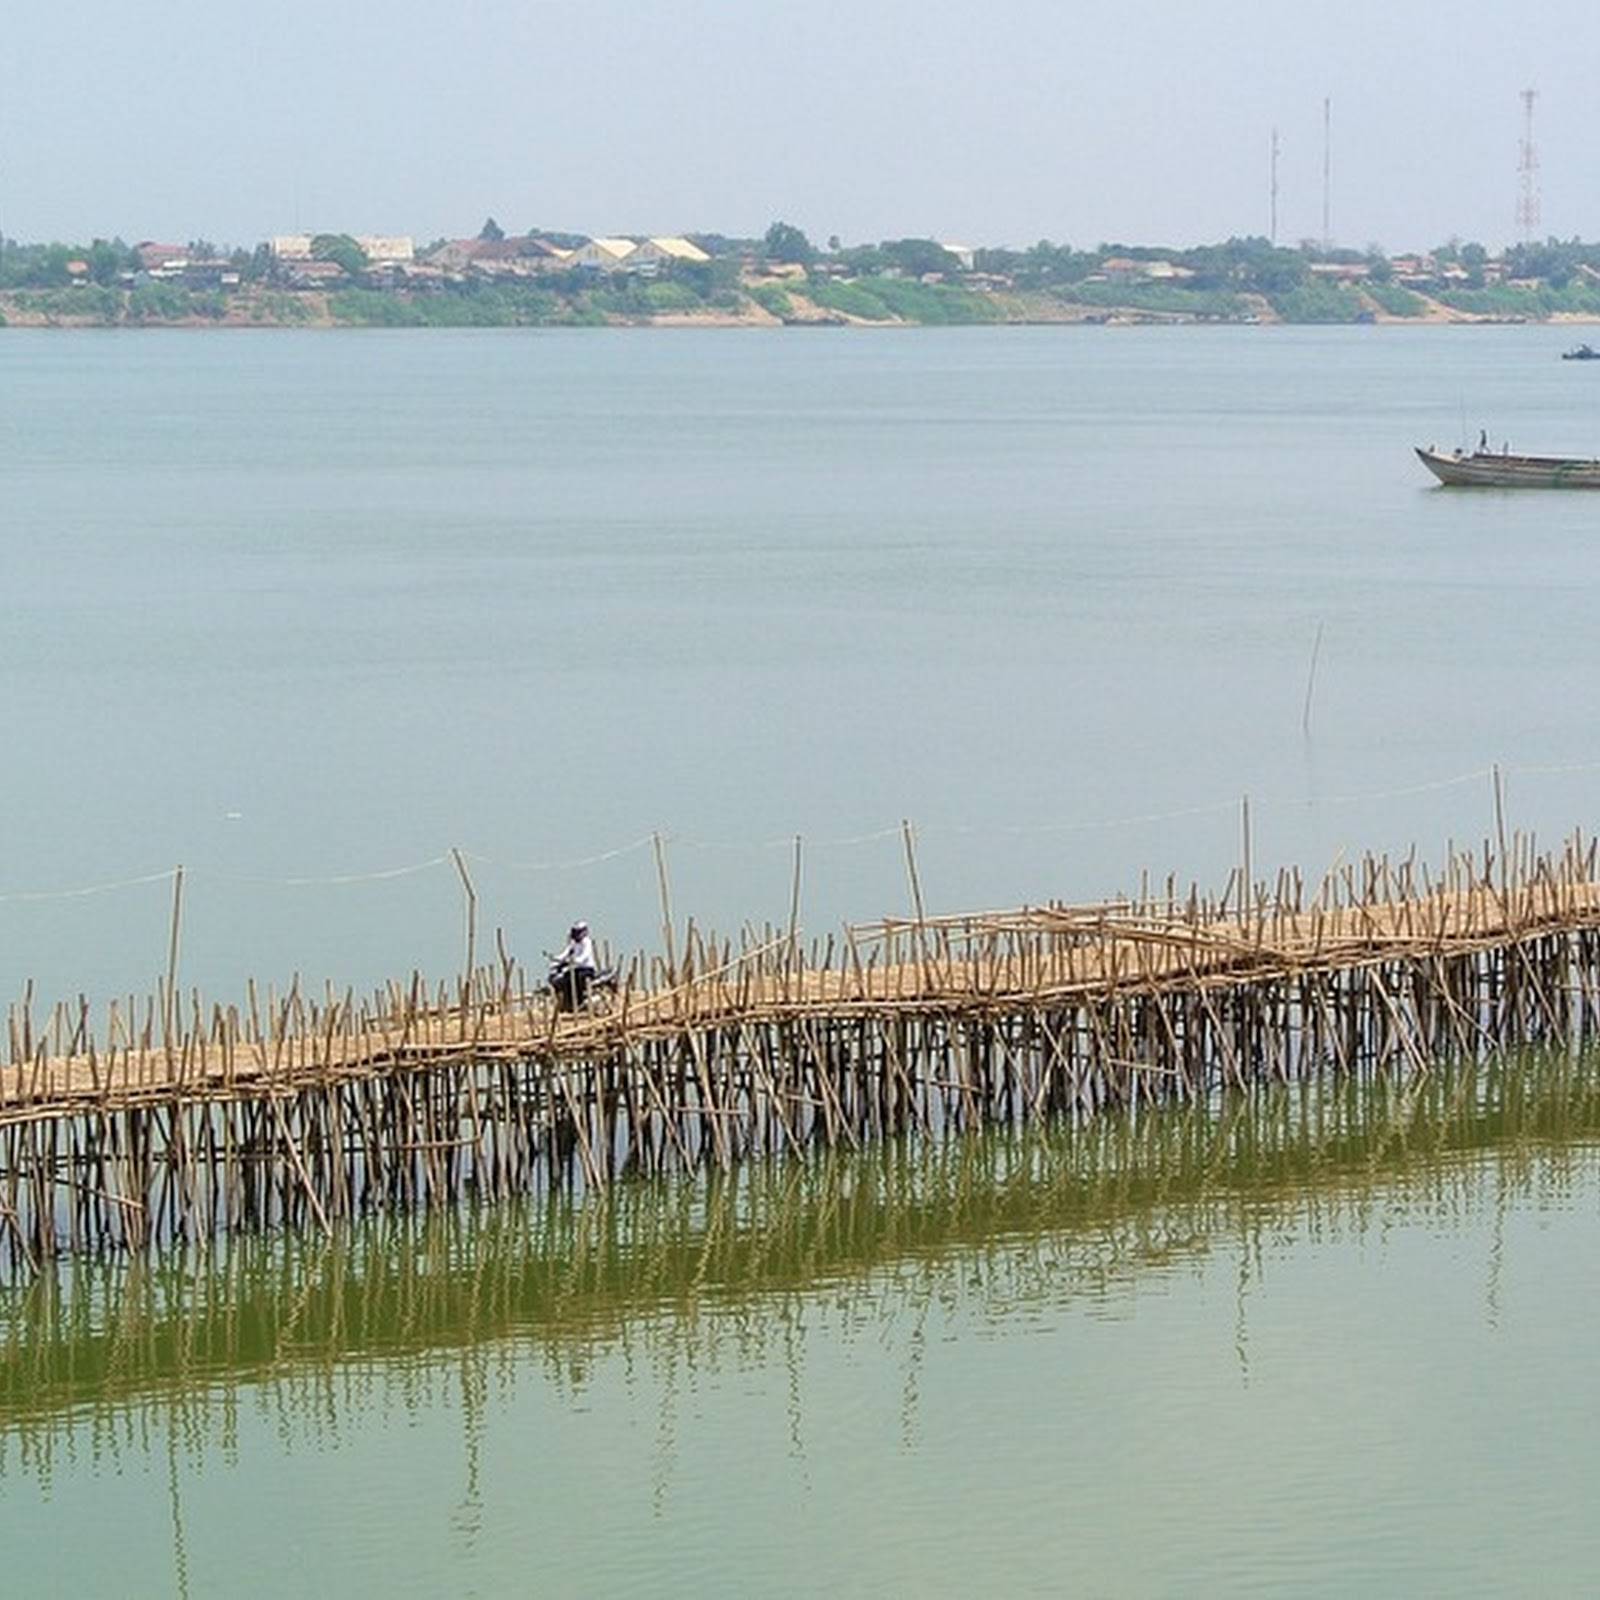 The Bamboo Bridge of Kampong Cham That is Built And Dismantled Every Year